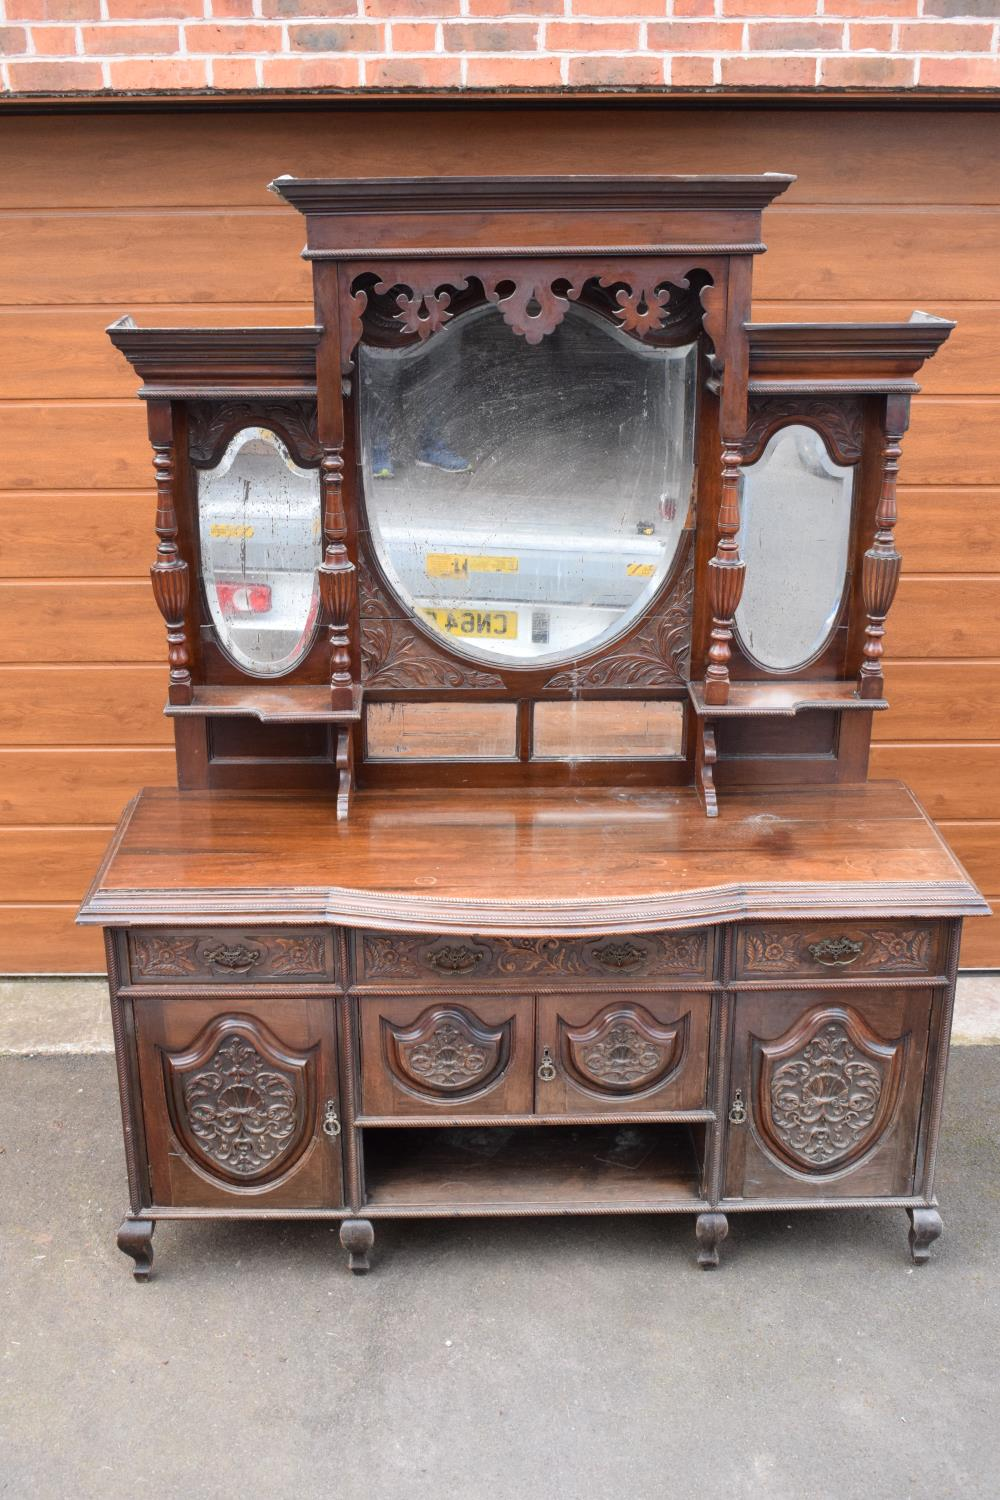 Edwardian large carved oak mirror backed sideboard. 178 x 64 x 224cm height. In good functional